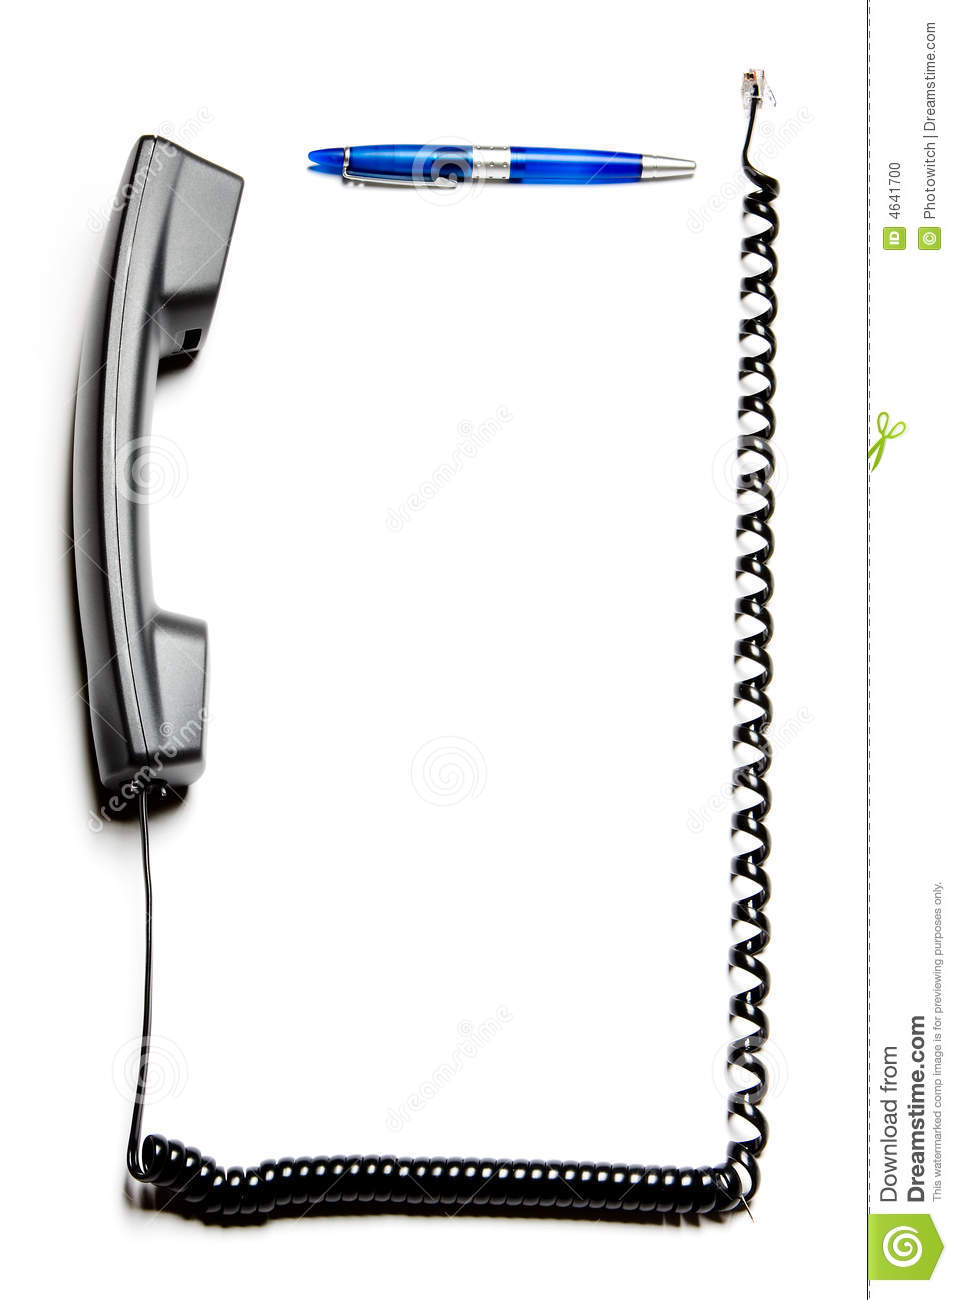 Phone cord border clipart for Html cell border